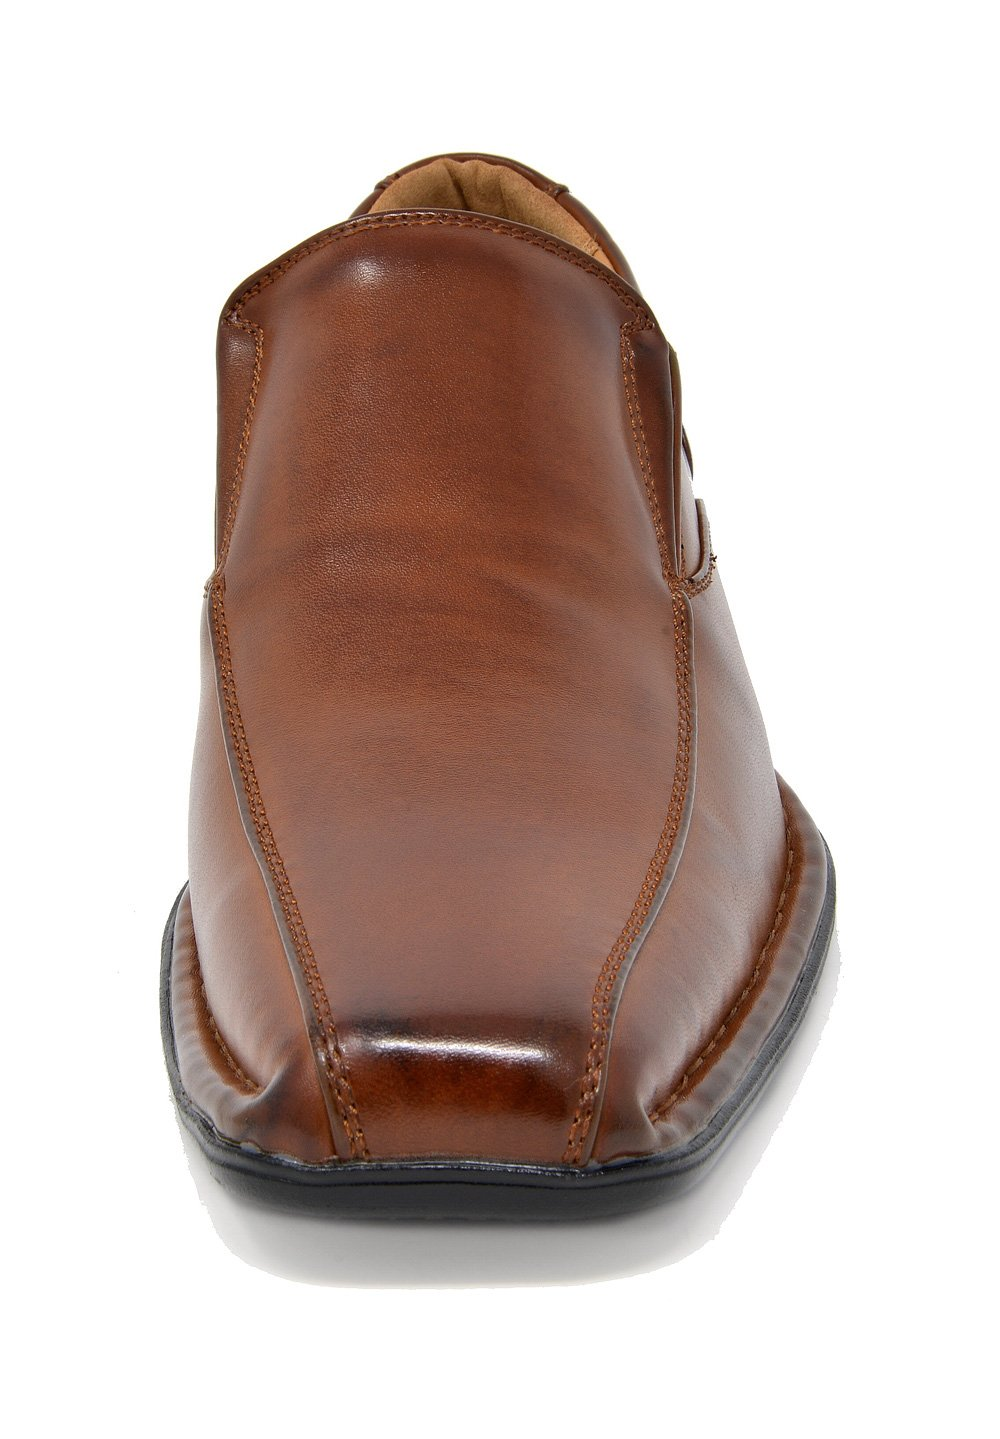 Bruno Marc Men's Giorgio-1 Brown Leather Lined Dress Loafers Shoes - 11 M US by BRUNO MARC NEW YORK (Image #5)